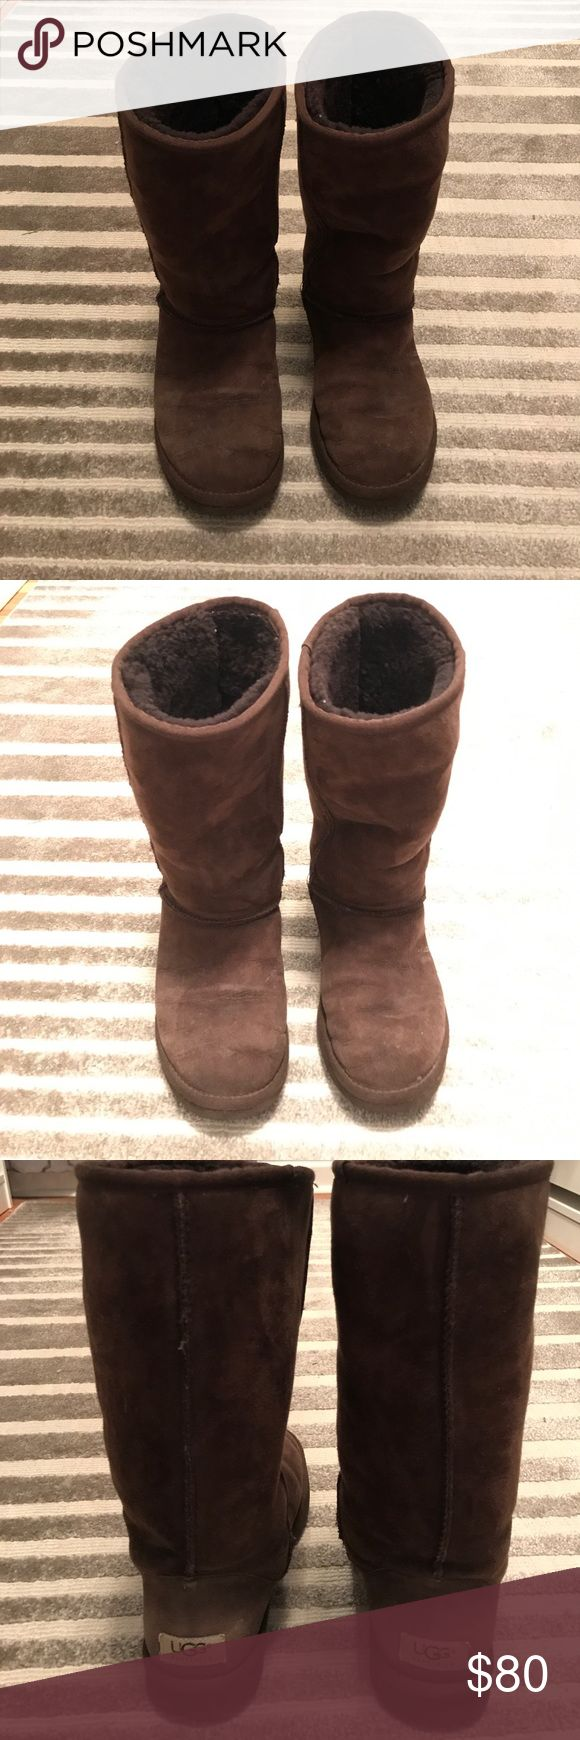 UGG Classic Tall Chocolate Boots Pre-loved Classic Tall UGG Boots in chocolate, a beautiful dark rich brown color. Pictures show current condition. There is wear but these cozy boots can still be worn, either with jeans, leggings or simply as a boot to get you in and out of the office. Let me know if you have any questions! UGG Shoes Winter & Rain Boots